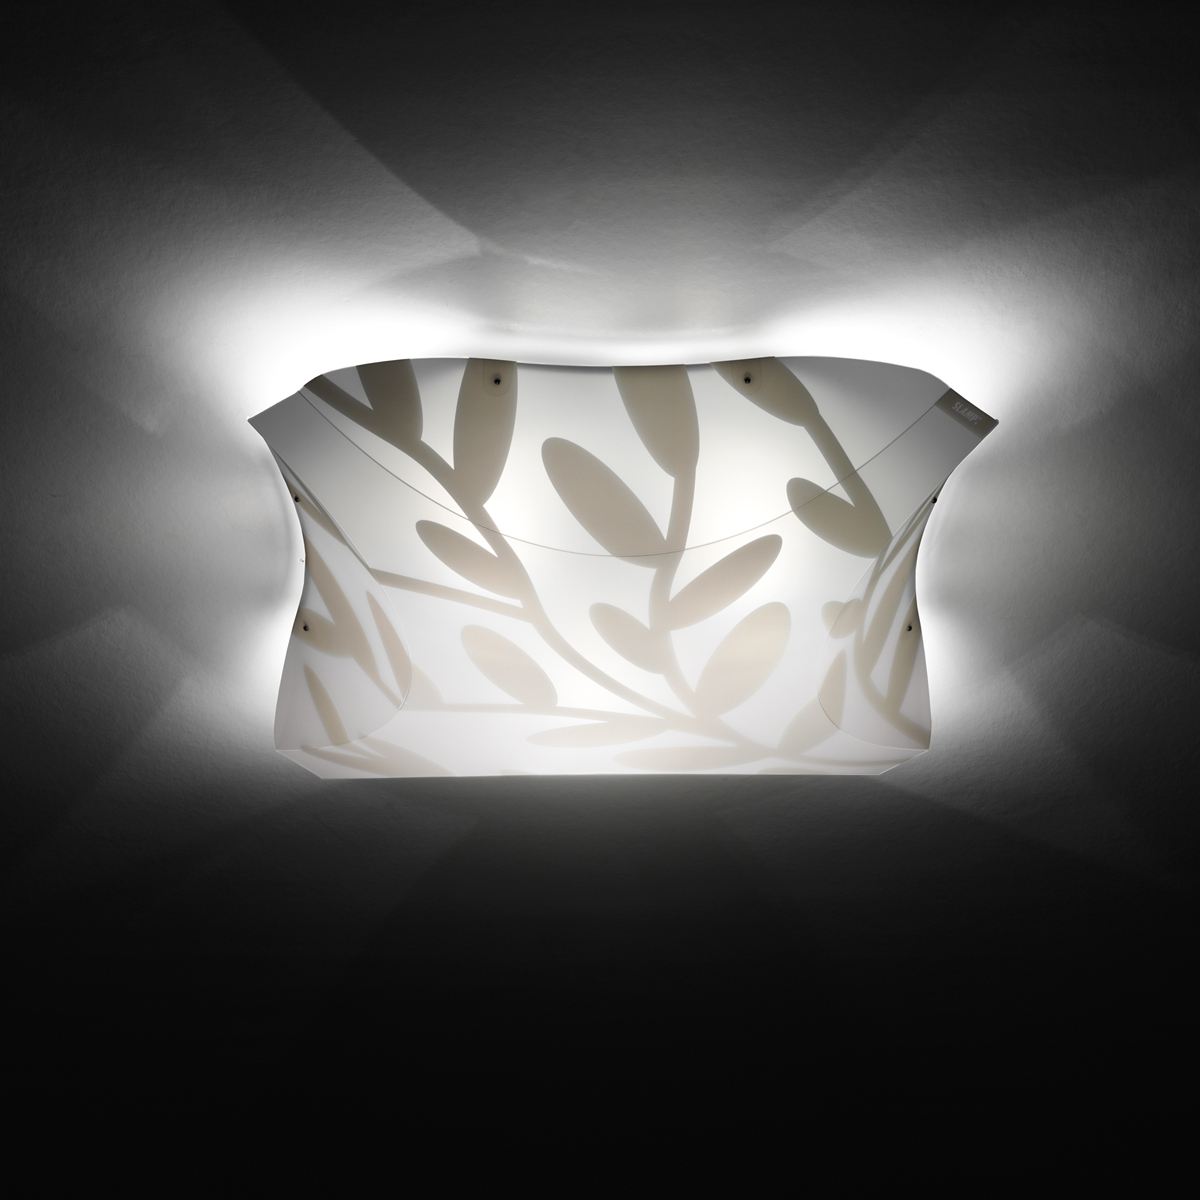 Dafne Plana Large Ceiling Lamp